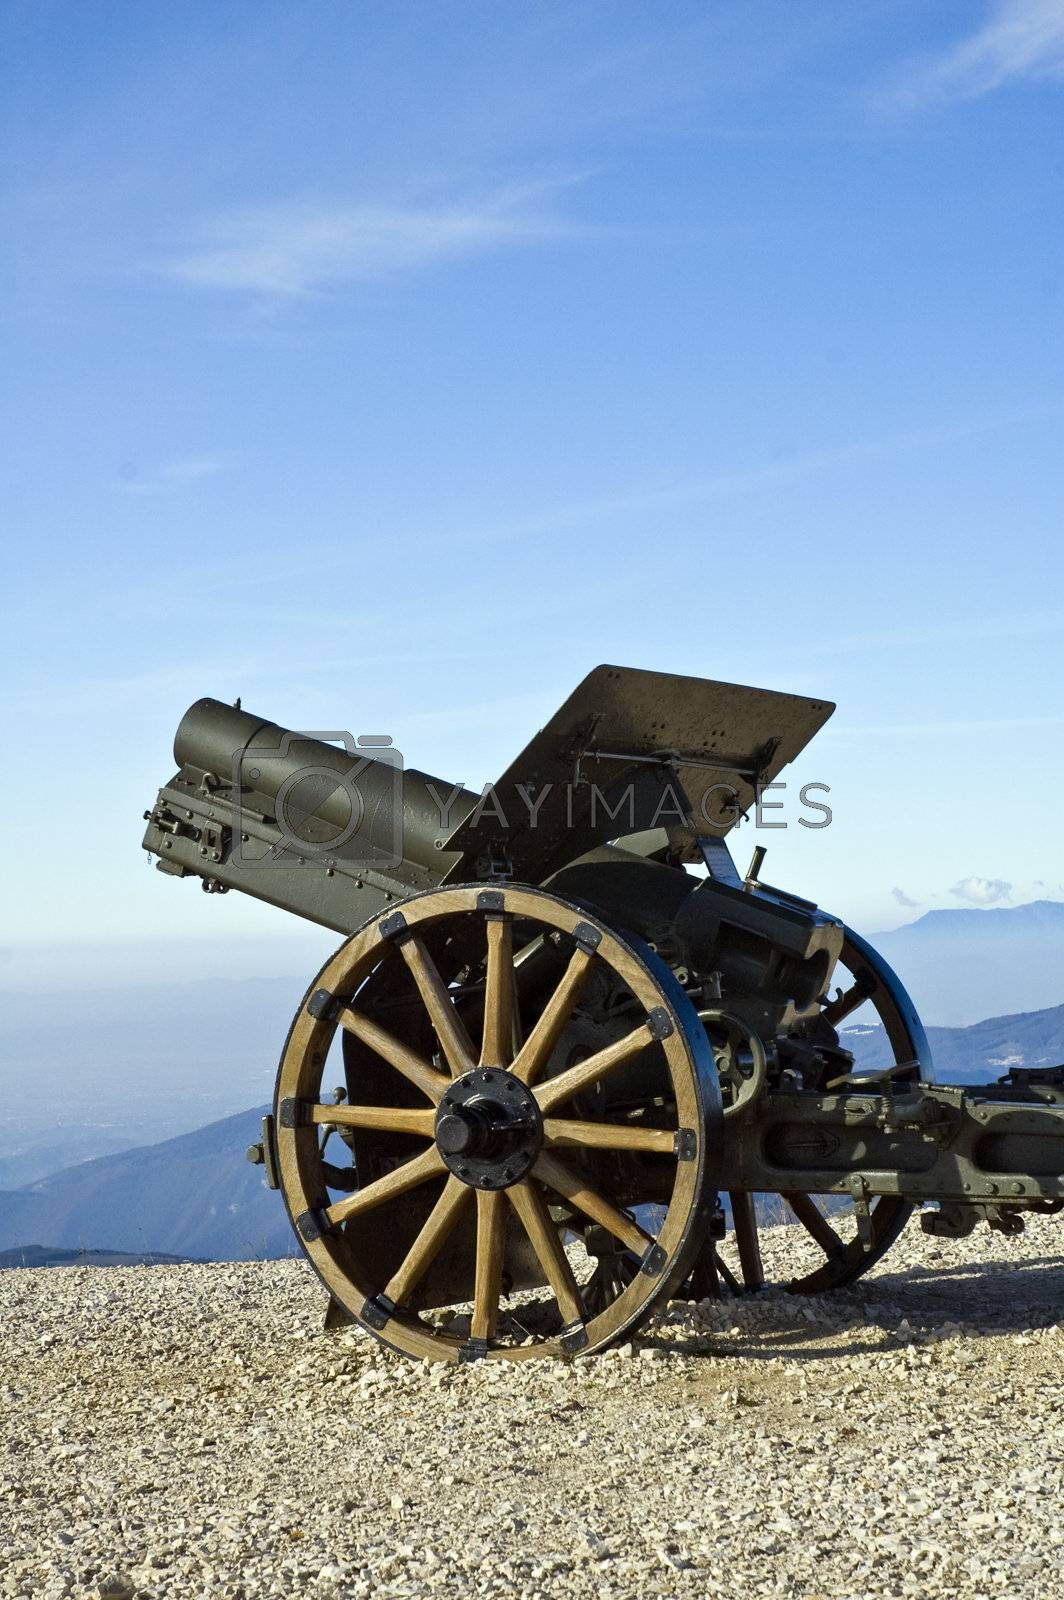 cannon on display